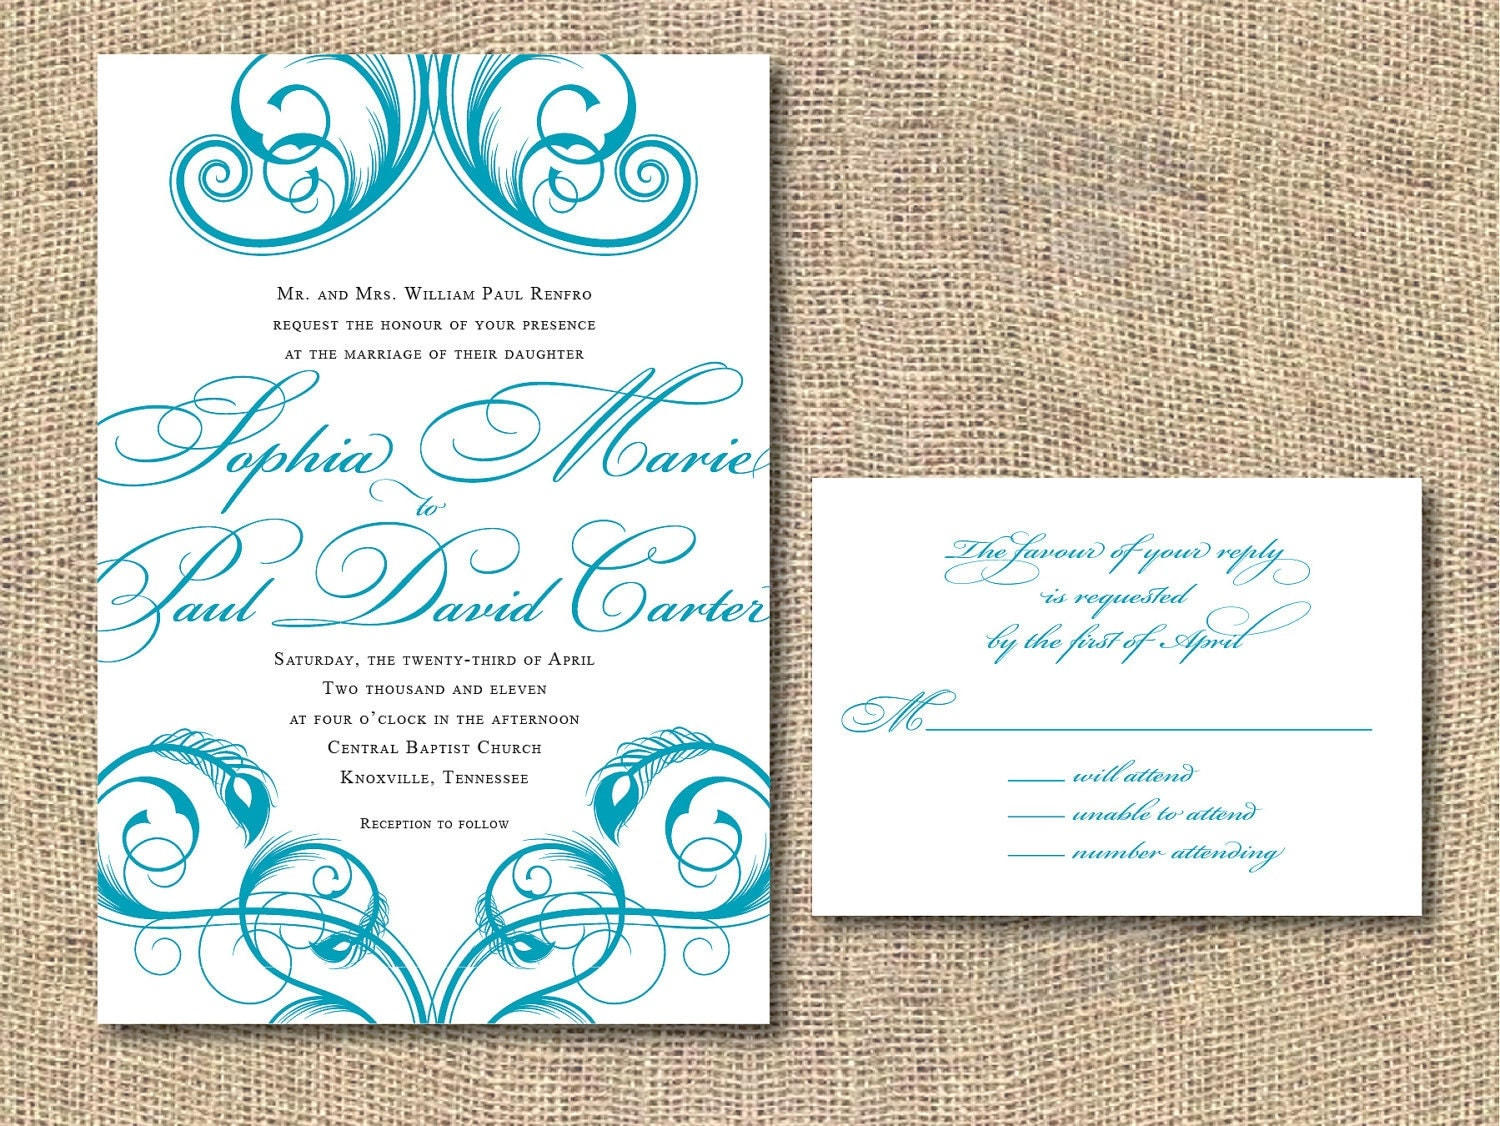 Create Printable Invitations Online Free as best invitations example